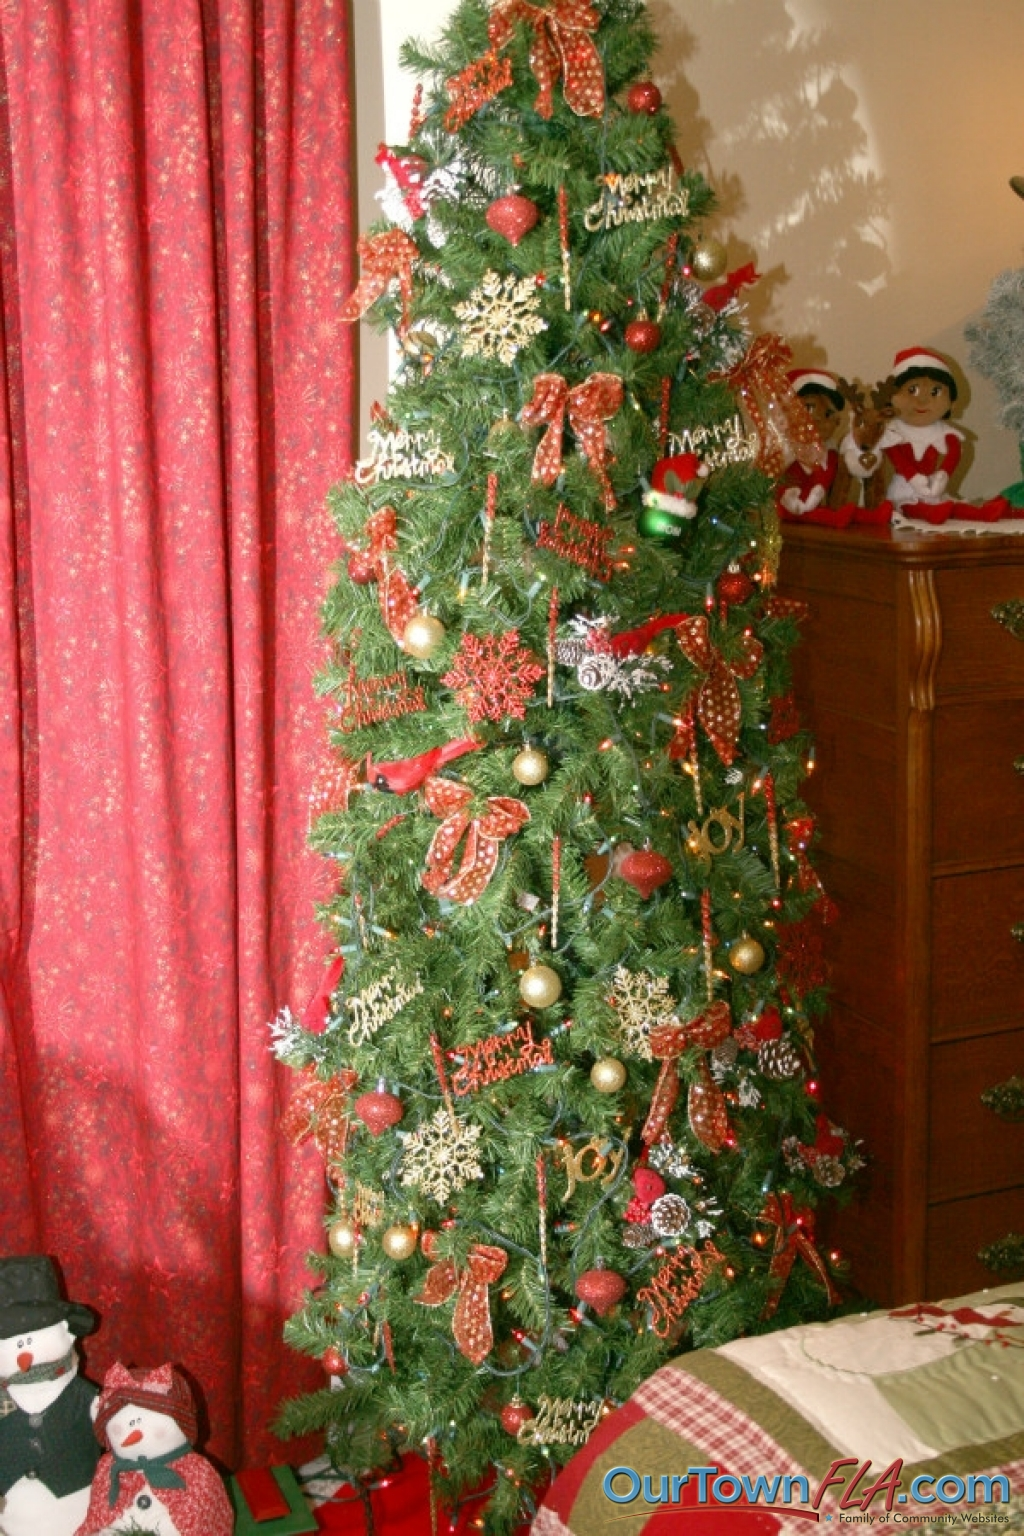 The Tuttle\'s 4th Annual Christmas Wonderland Open House, in Land O\'Lakes